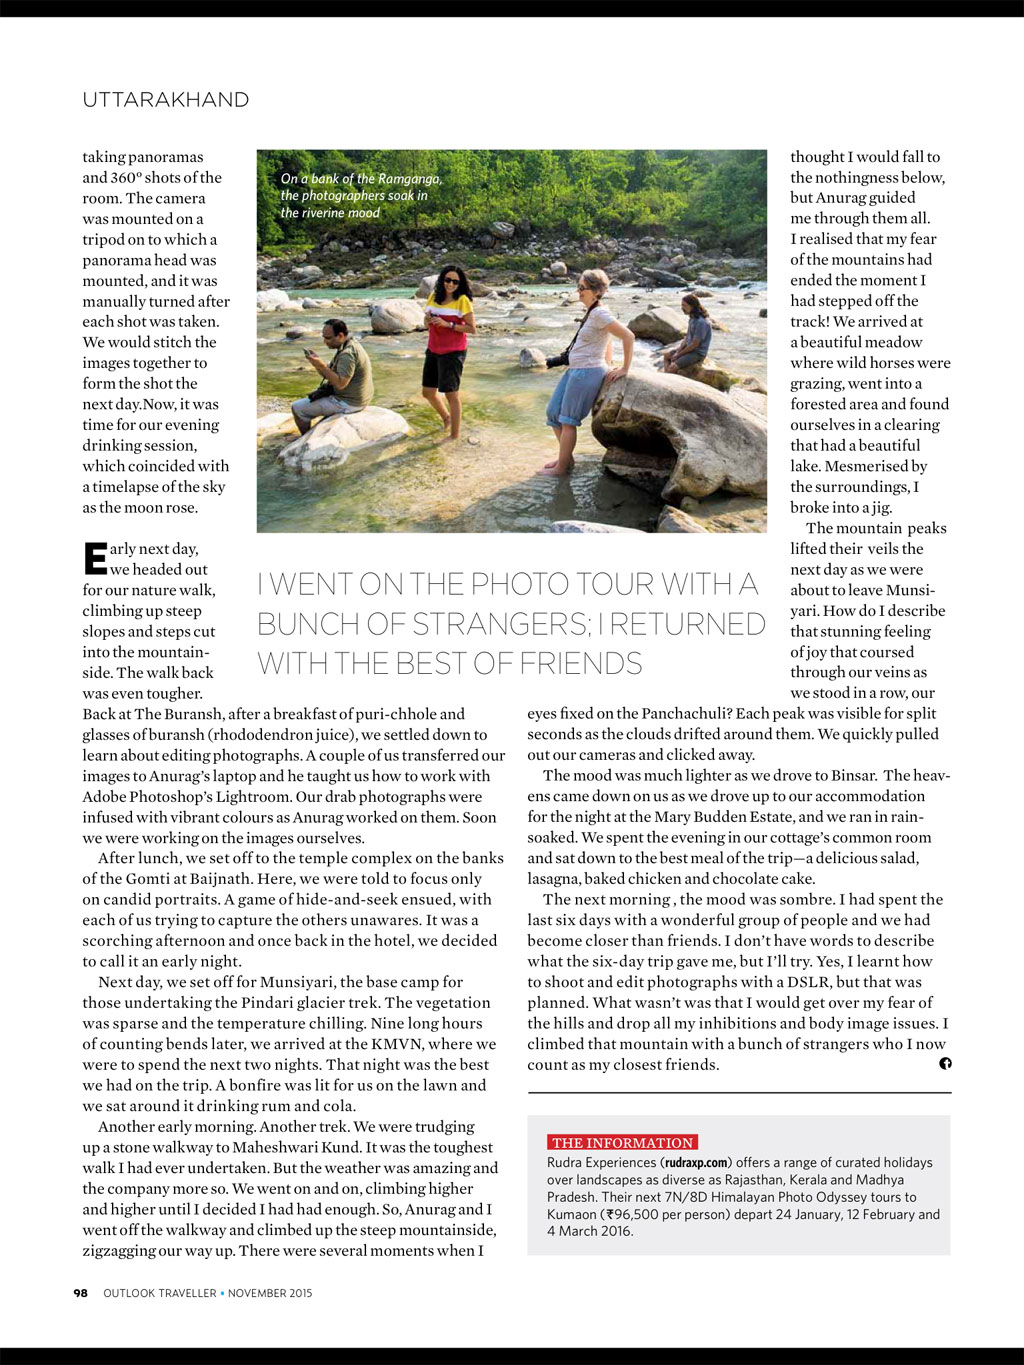 outlook-traveller-page2